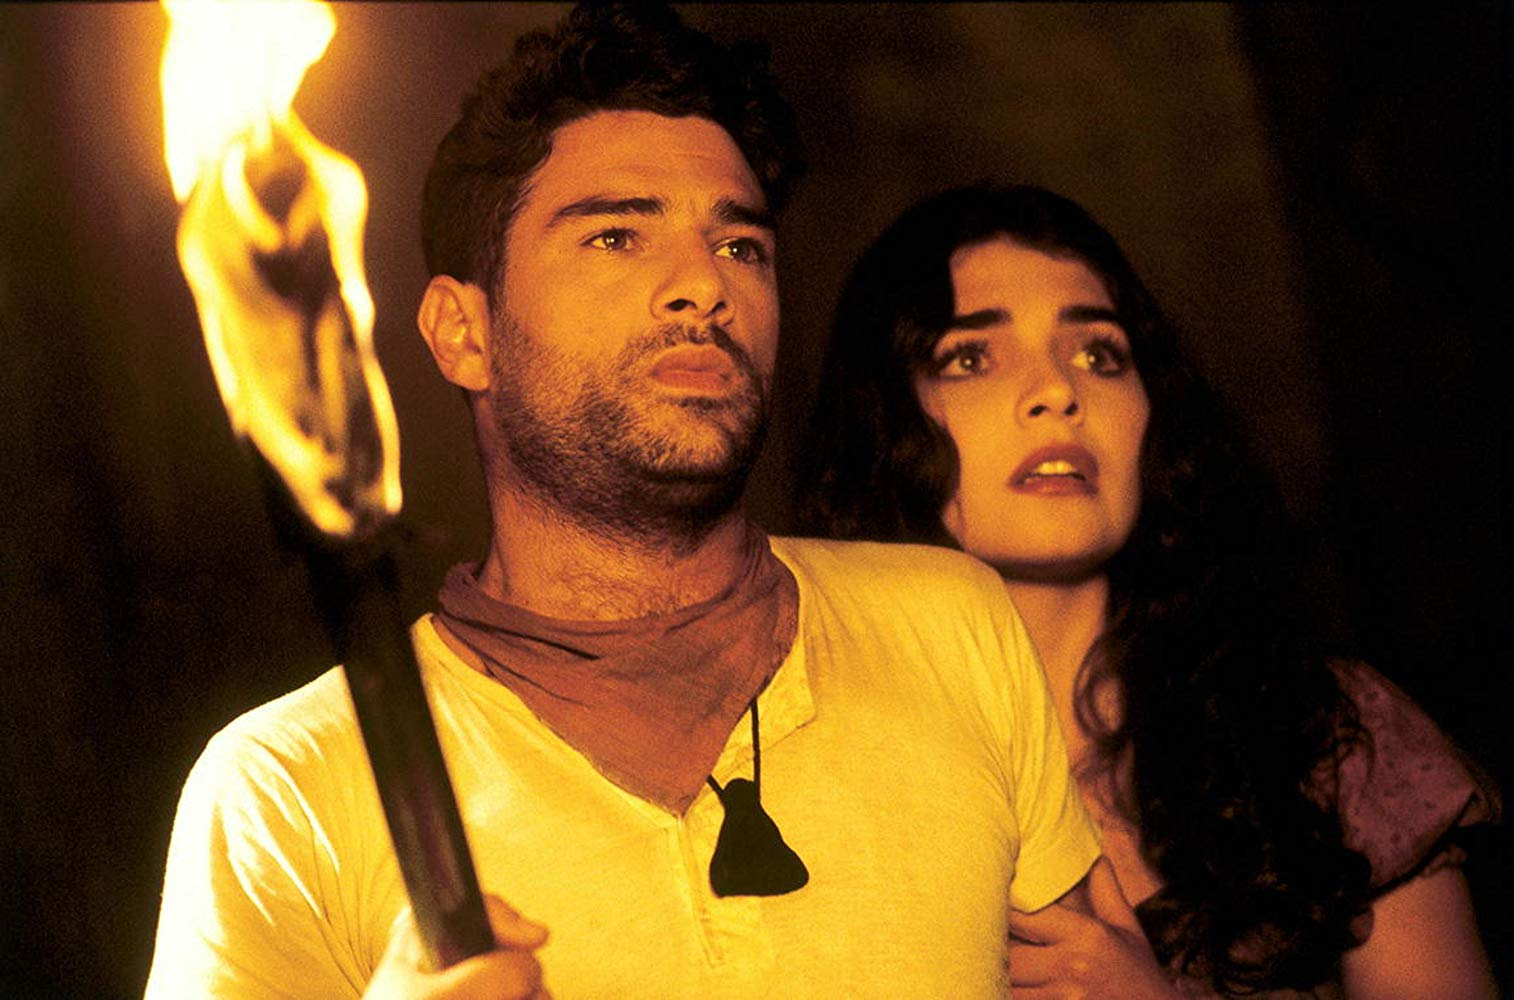 Outlaw Johnny Madrid (Marco Leonardi) and Esmeralda (Ara Celi), the hangman's daughter in From Dusk Till Dawn 3: The Hangman's Daughter (2000)